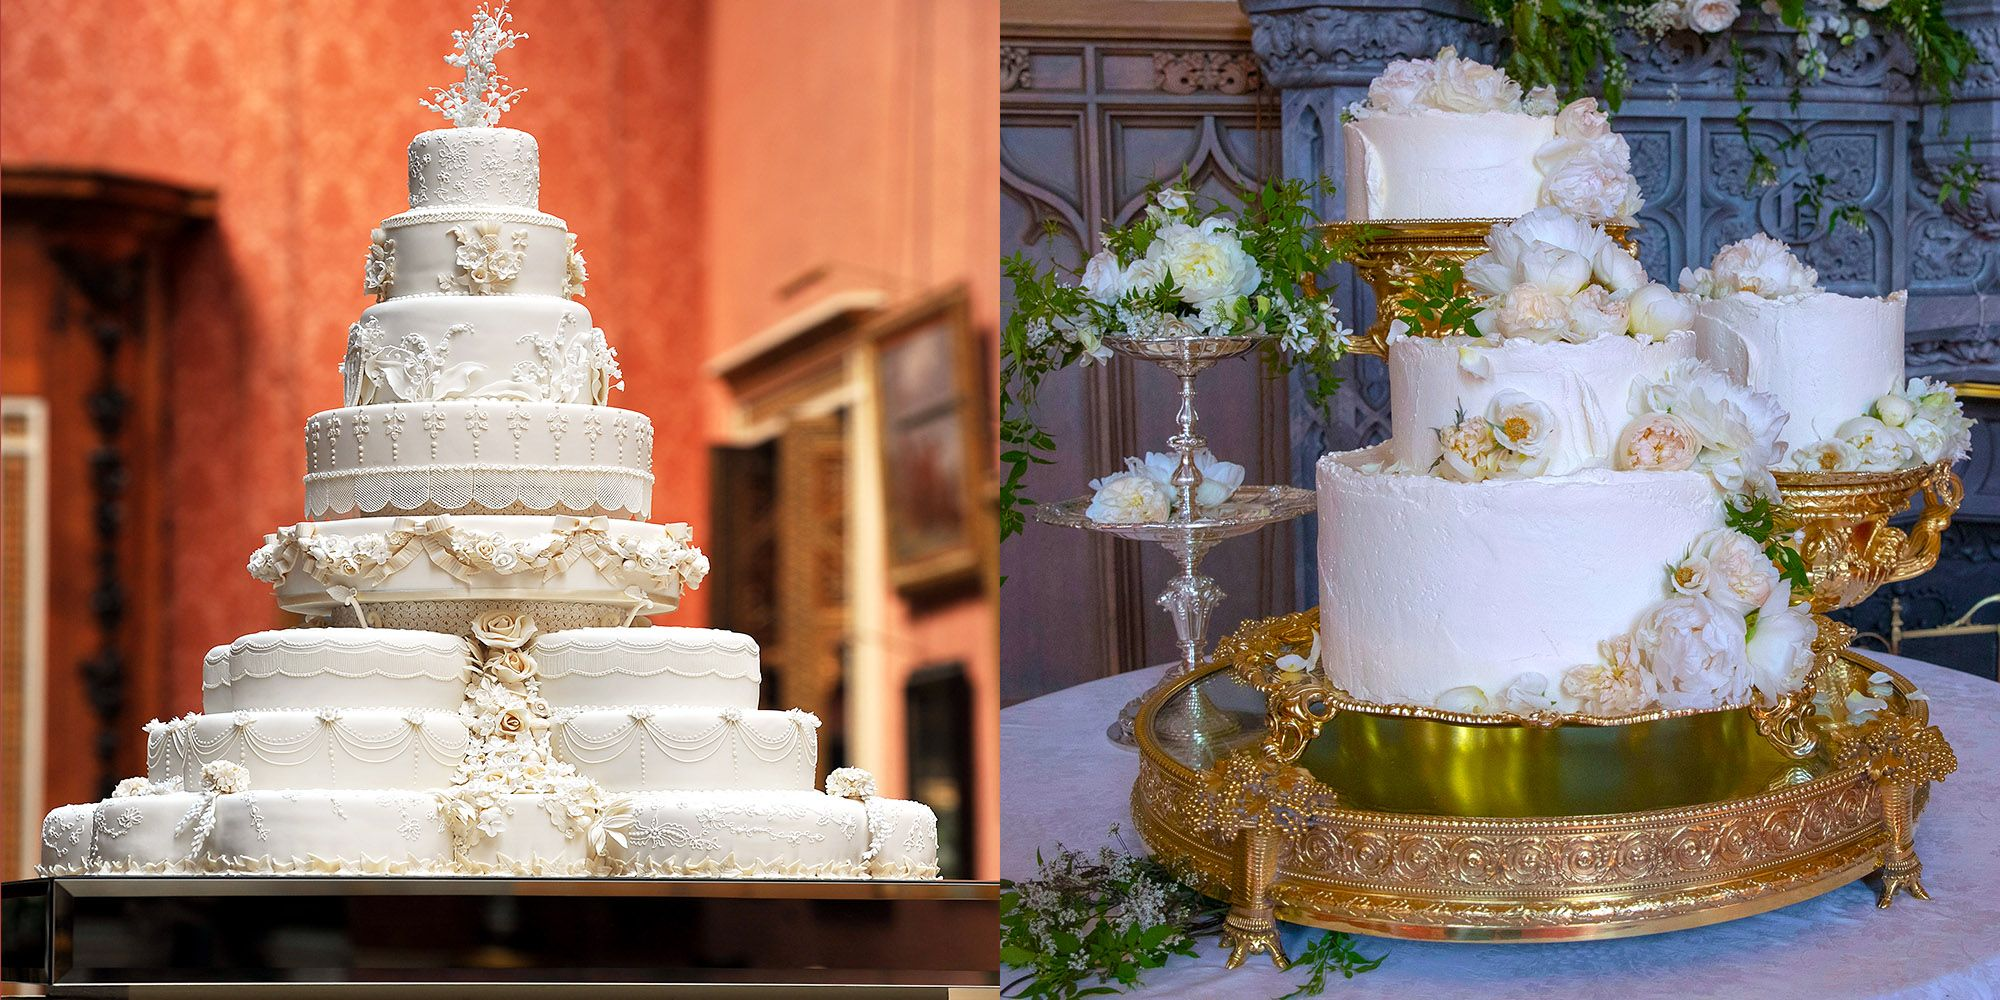 how meghan and harry s wedding cake compares to duchess kate and princess diana s wedding cake compares to duchess kate